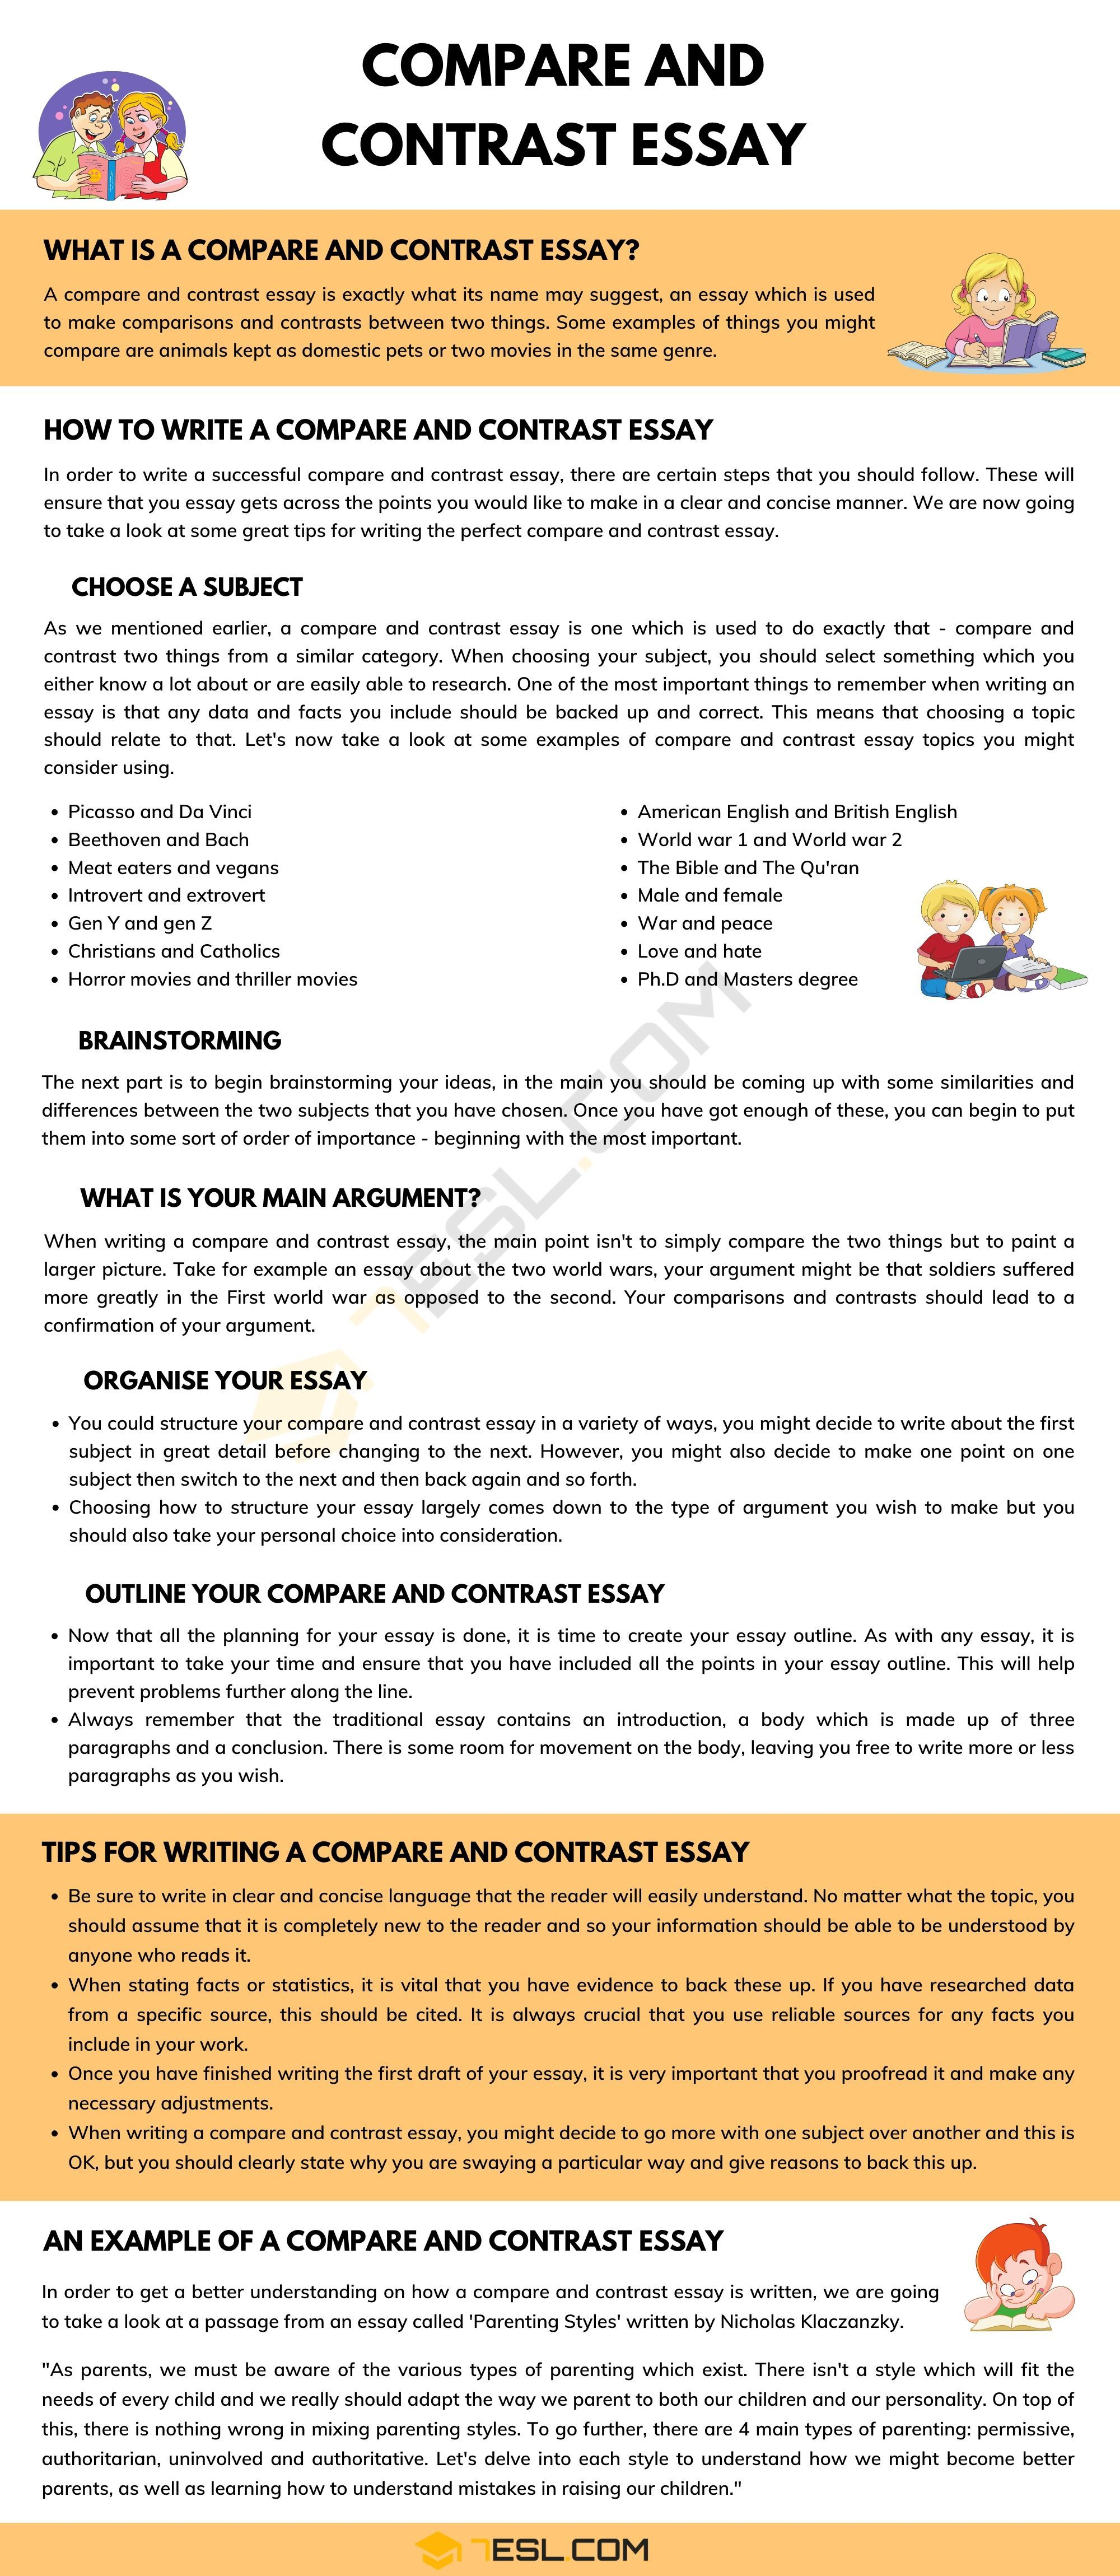 Compare And Contrast Essay Definition Outline And Useful Examples 7esl Essay Writing Skills Compare And Contrast Essay How to write compare and contrast essay